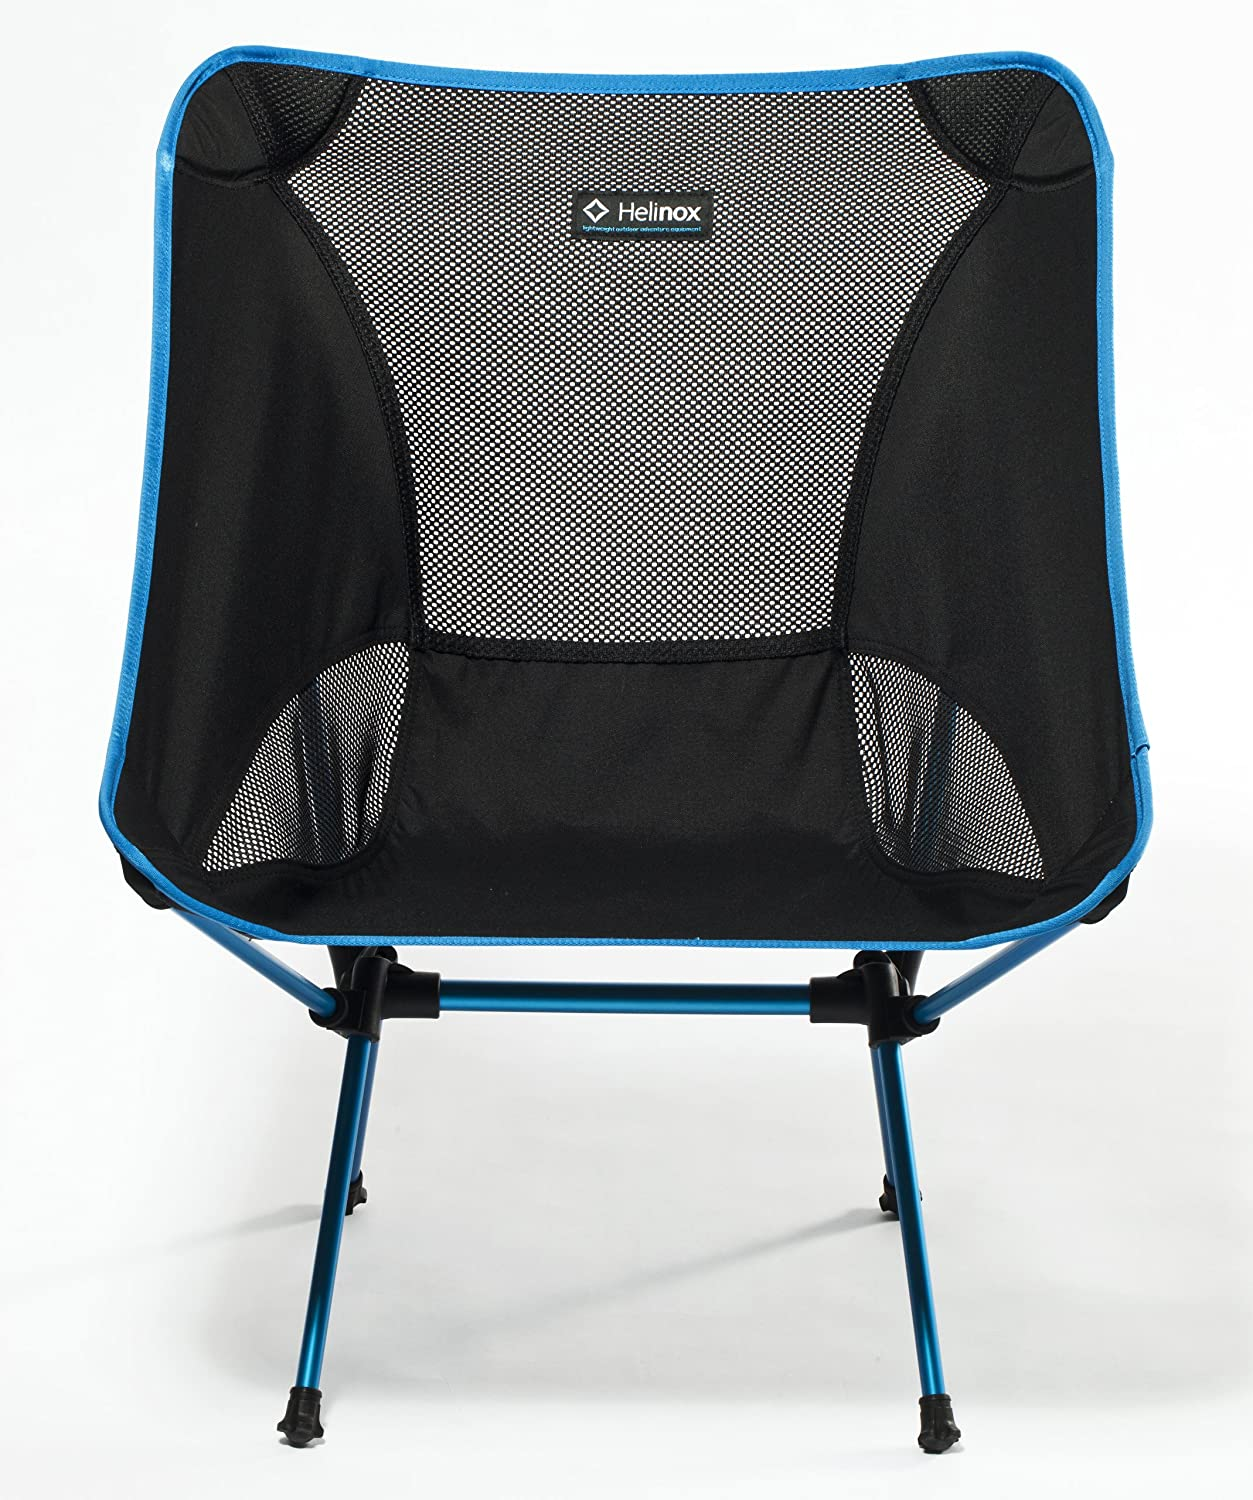 Helinox Chair One Bild 3